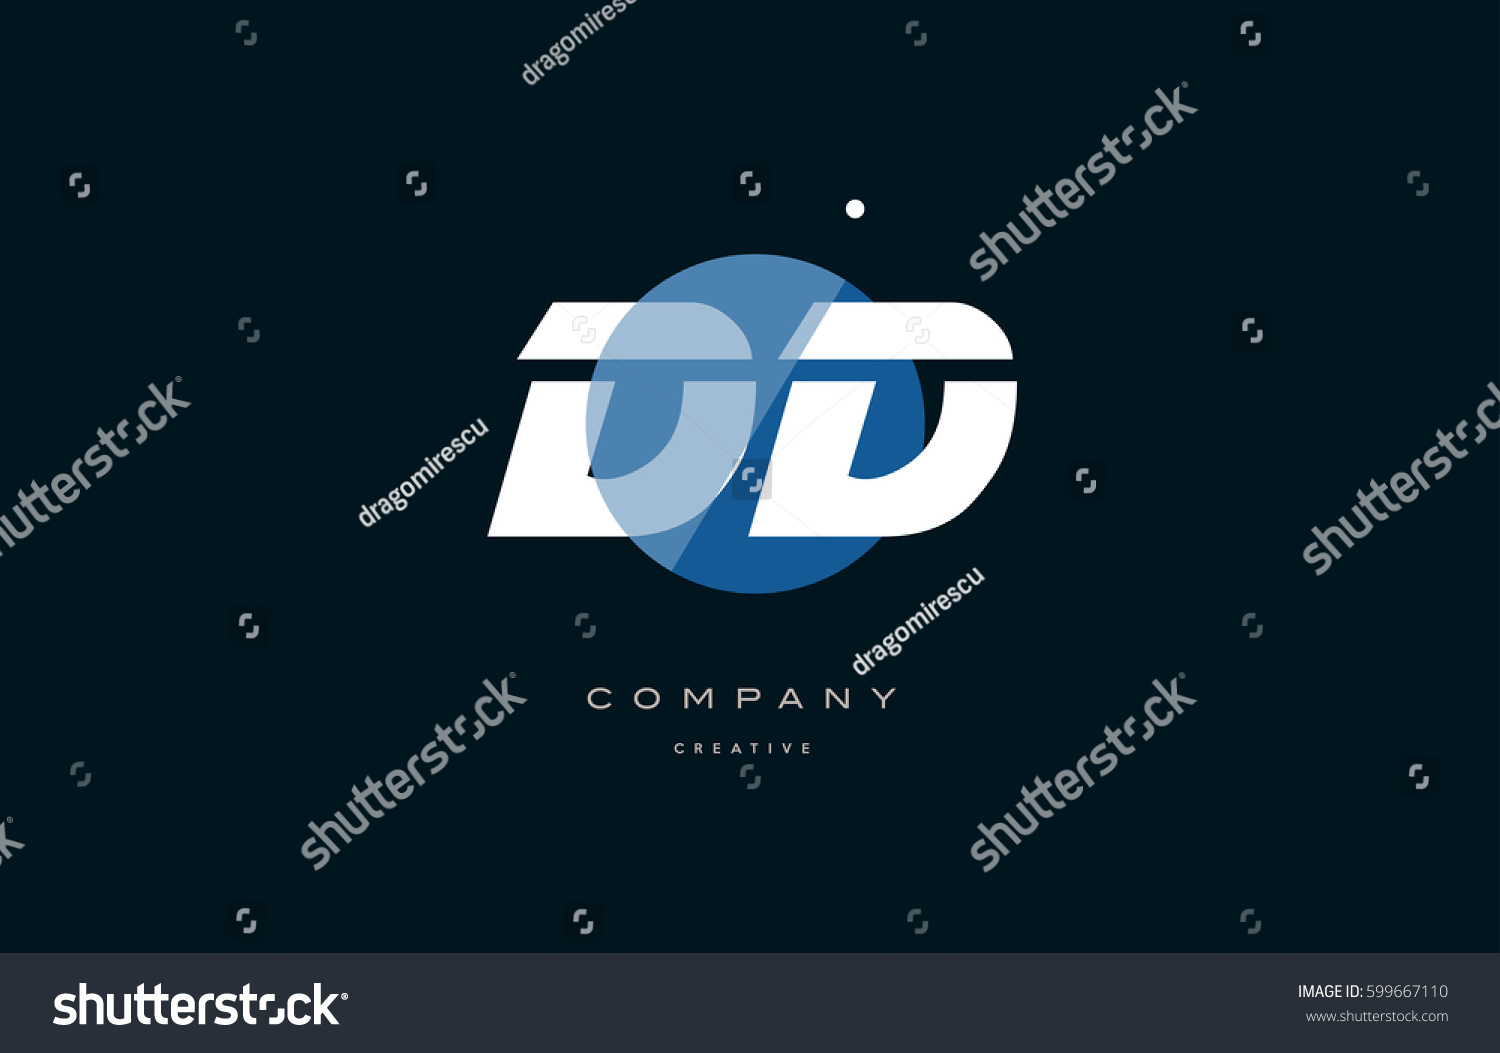 Dd D D Blue Circle Dot Stock Vector 599667110 - Shutterstock